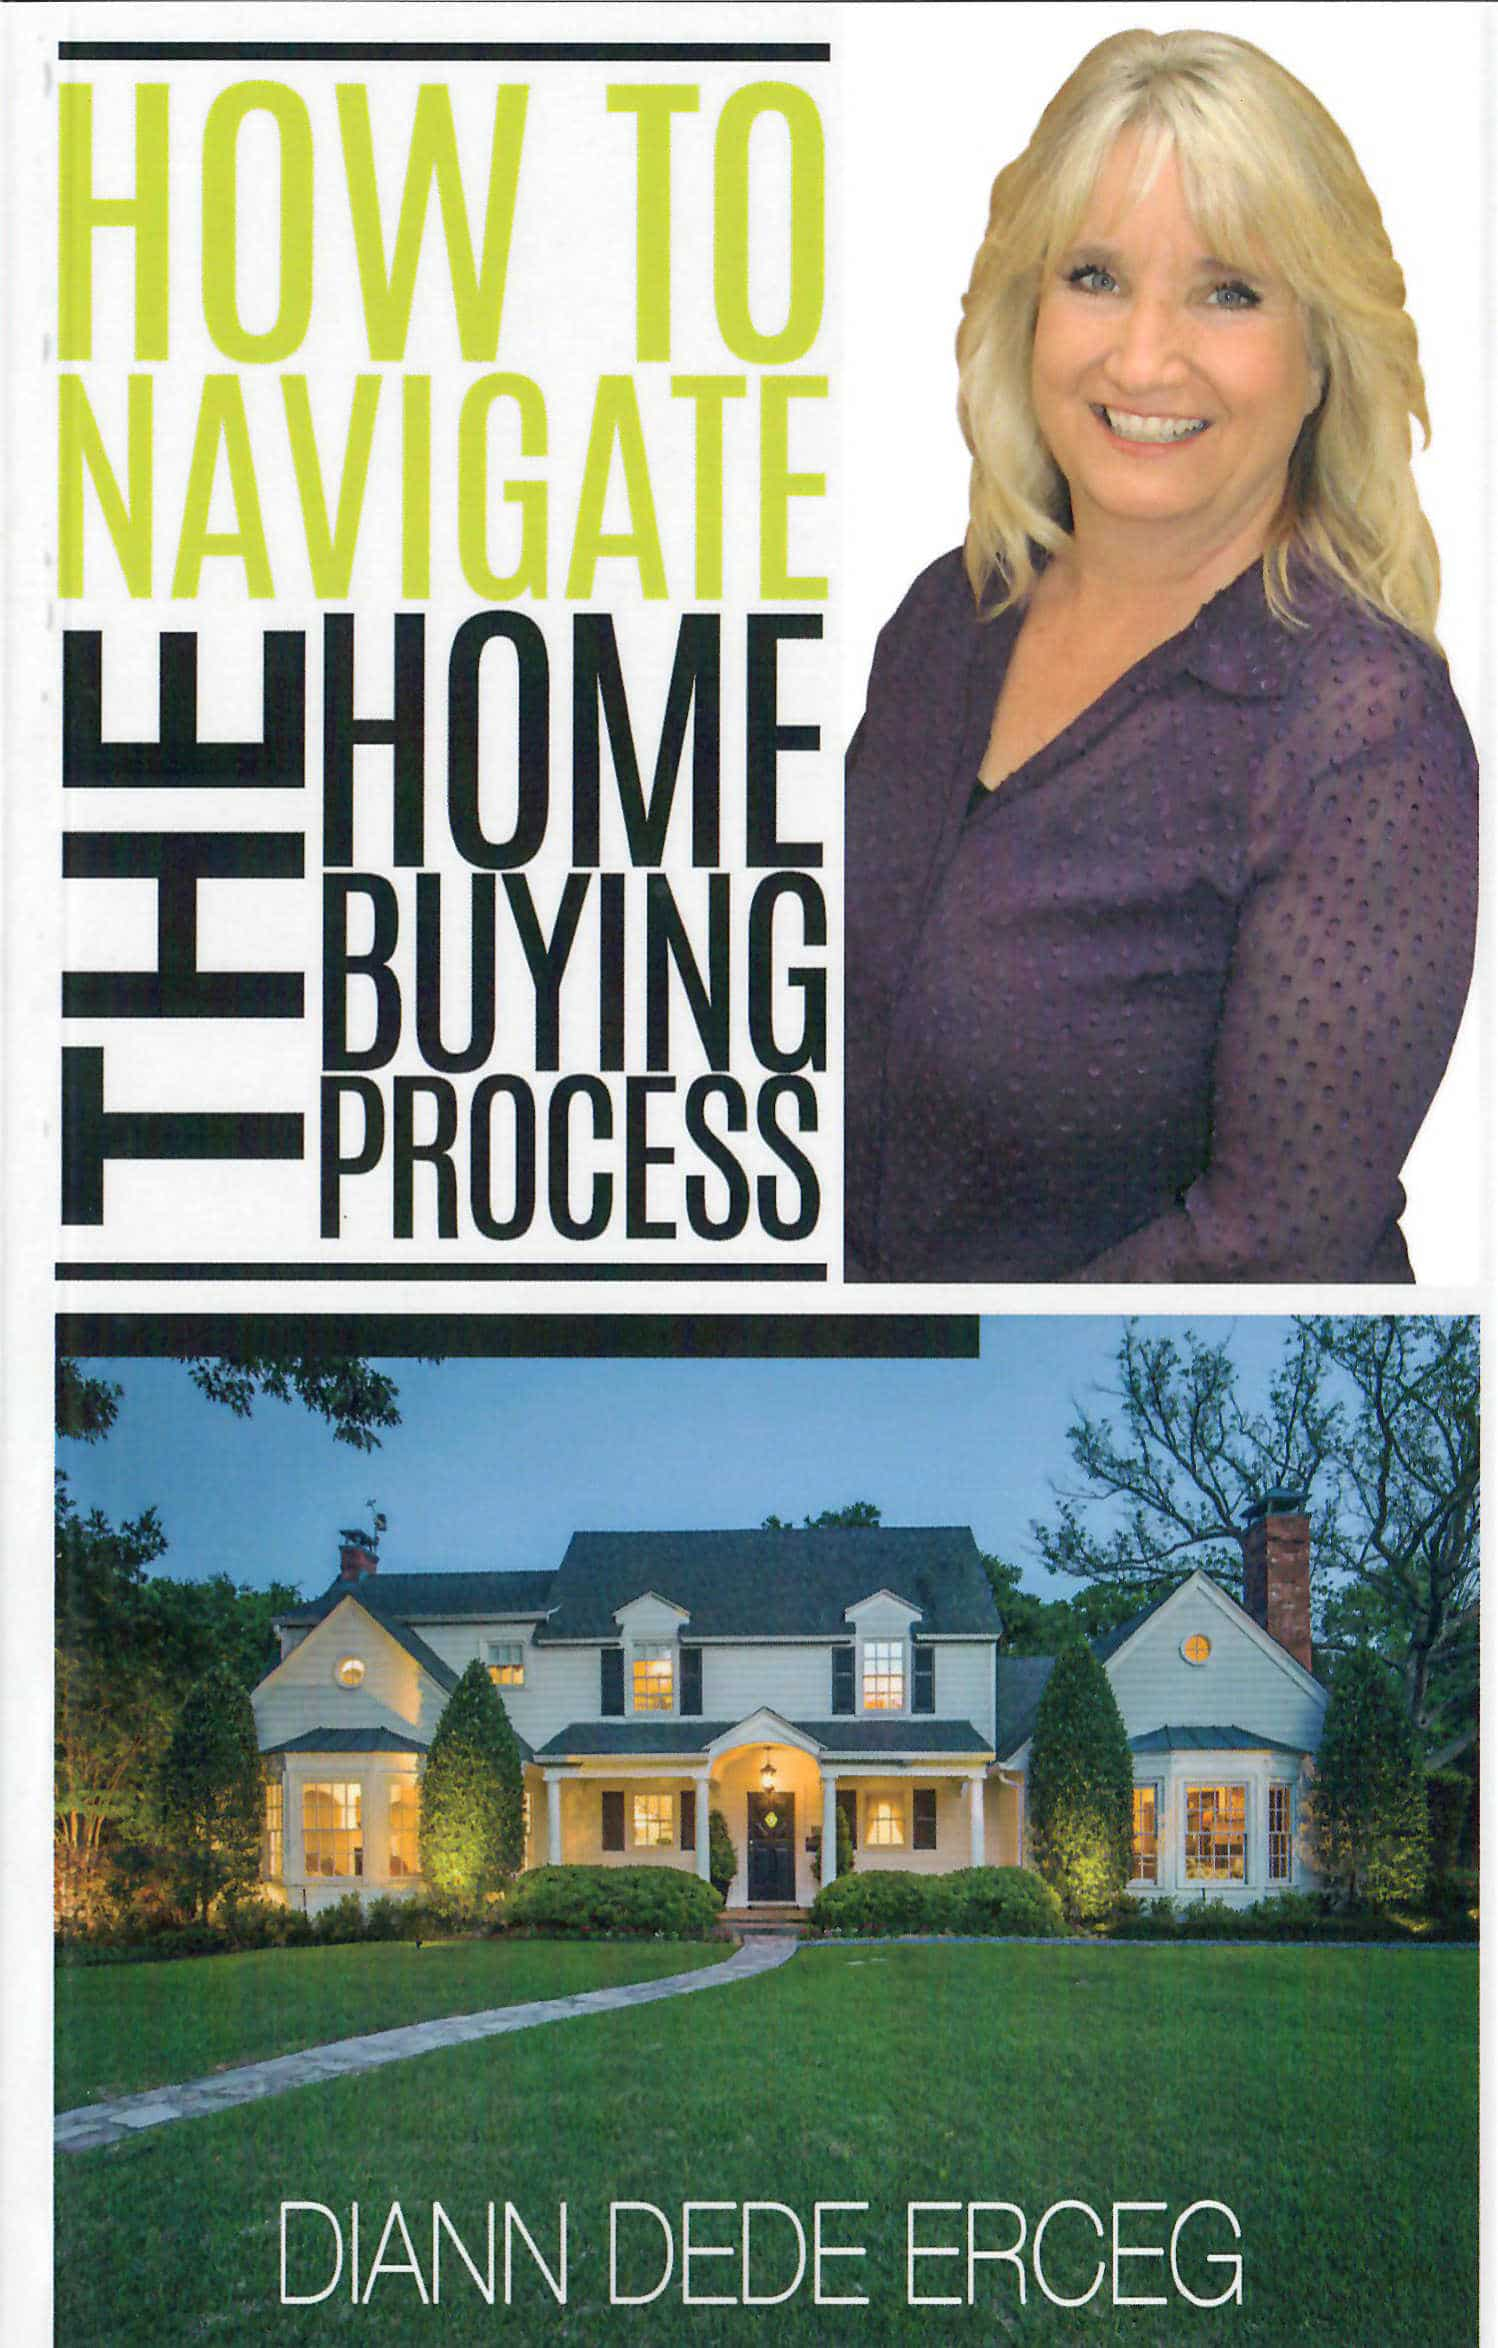 the process of buying a house book cover graphics